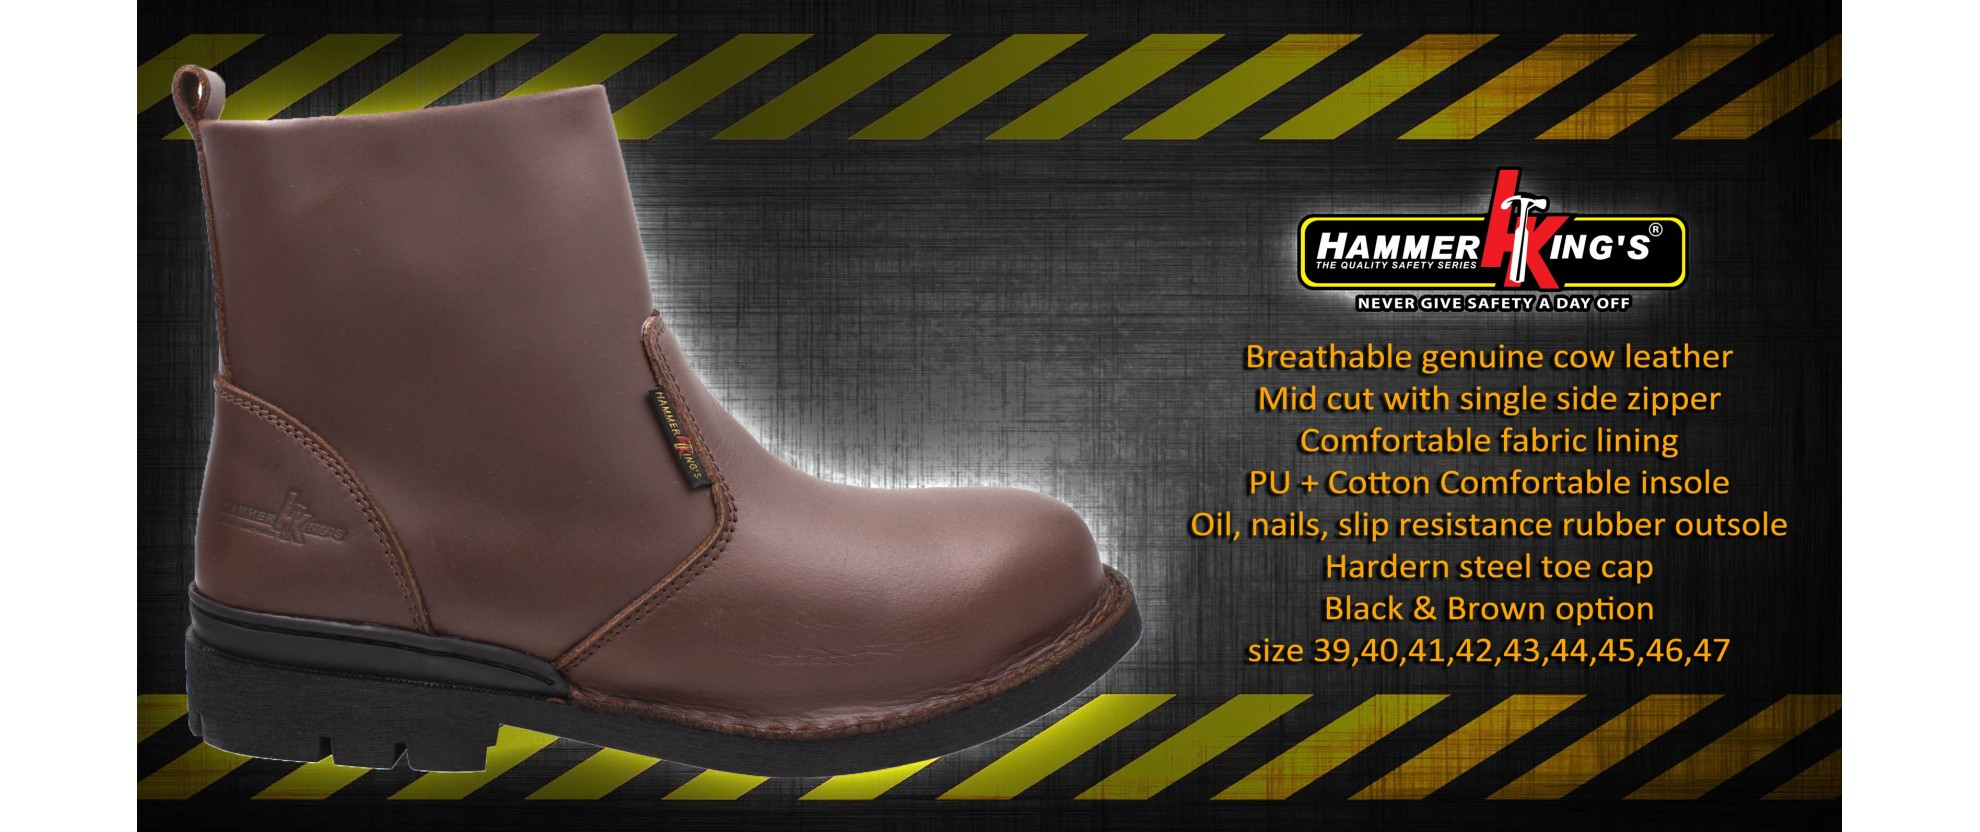 HAMMER KING SAFETY COLLECTION